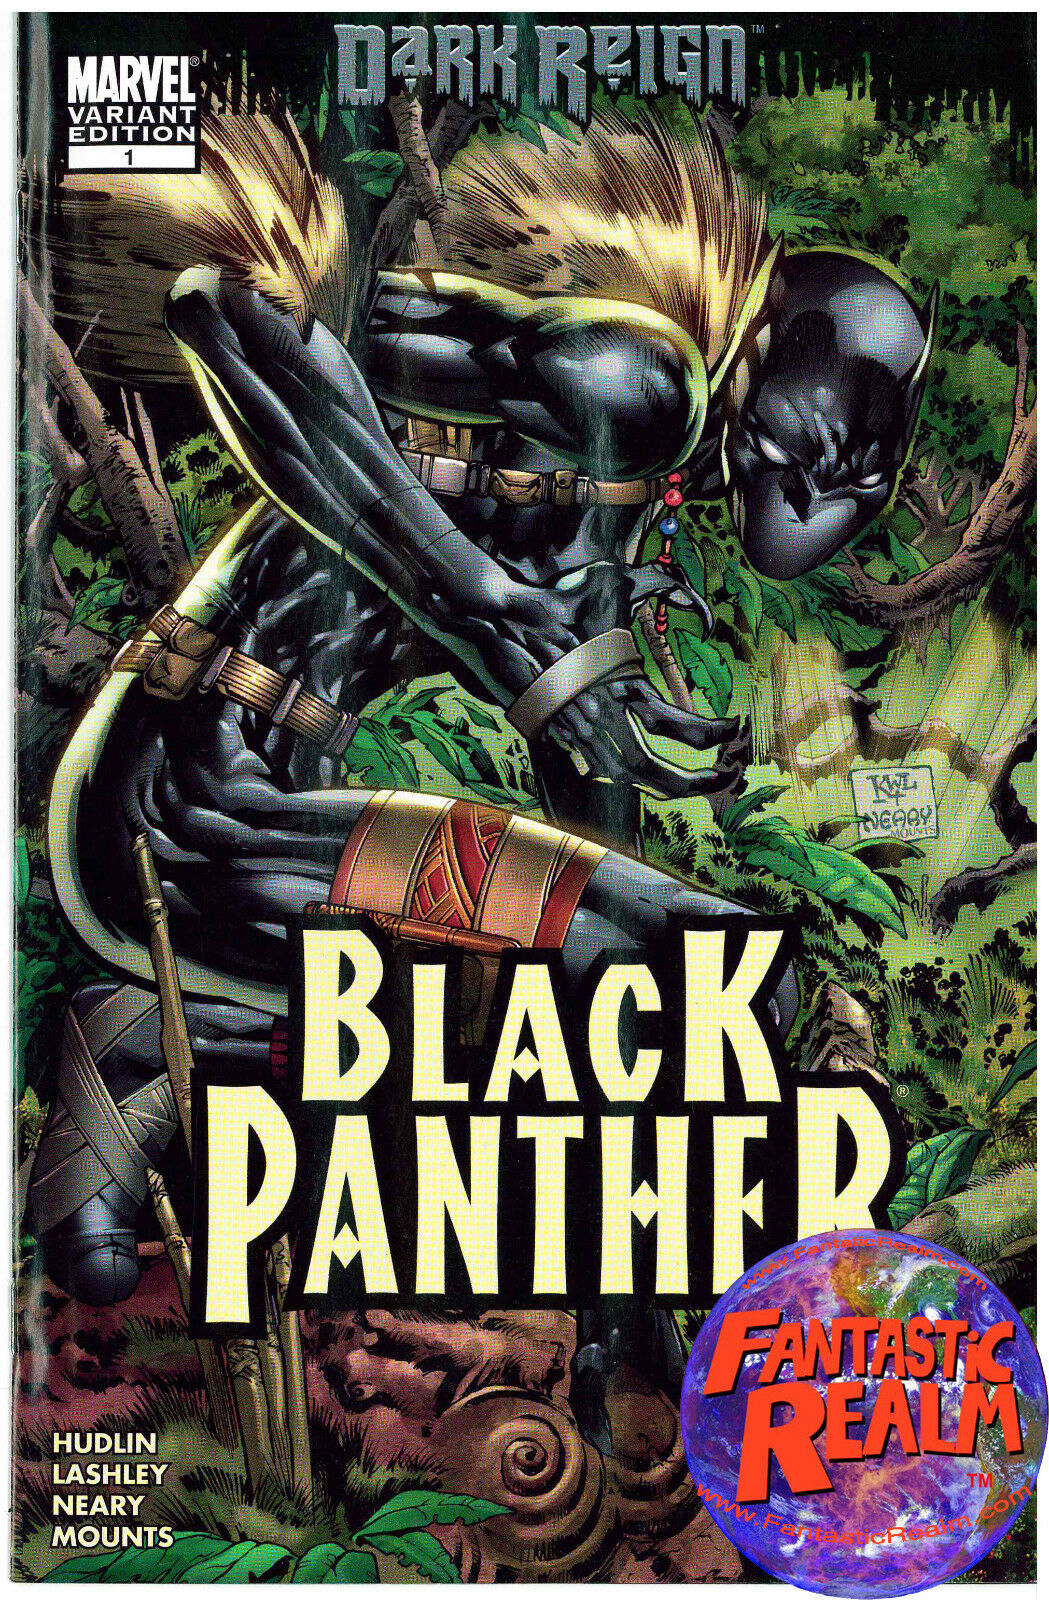 DARK REIGN BLACK PANTHER #1 KEN LASHLEY VARIANT EDITION MARVEL COMICS